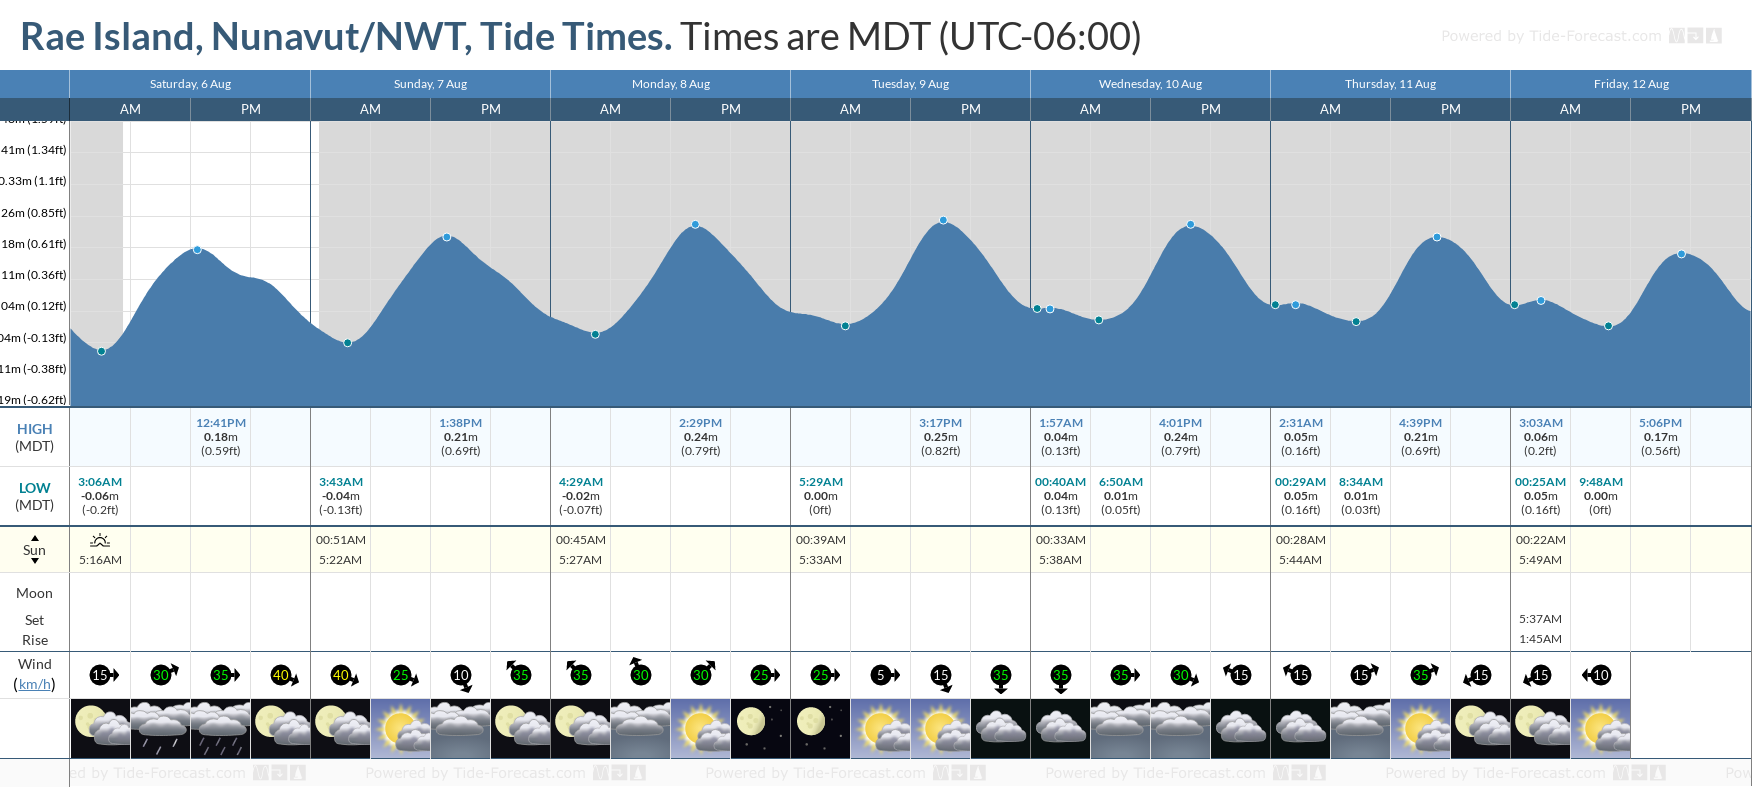 Rae Island, Nunavut/NWT Tide Chart including high and low tide tide times for the next 7 days